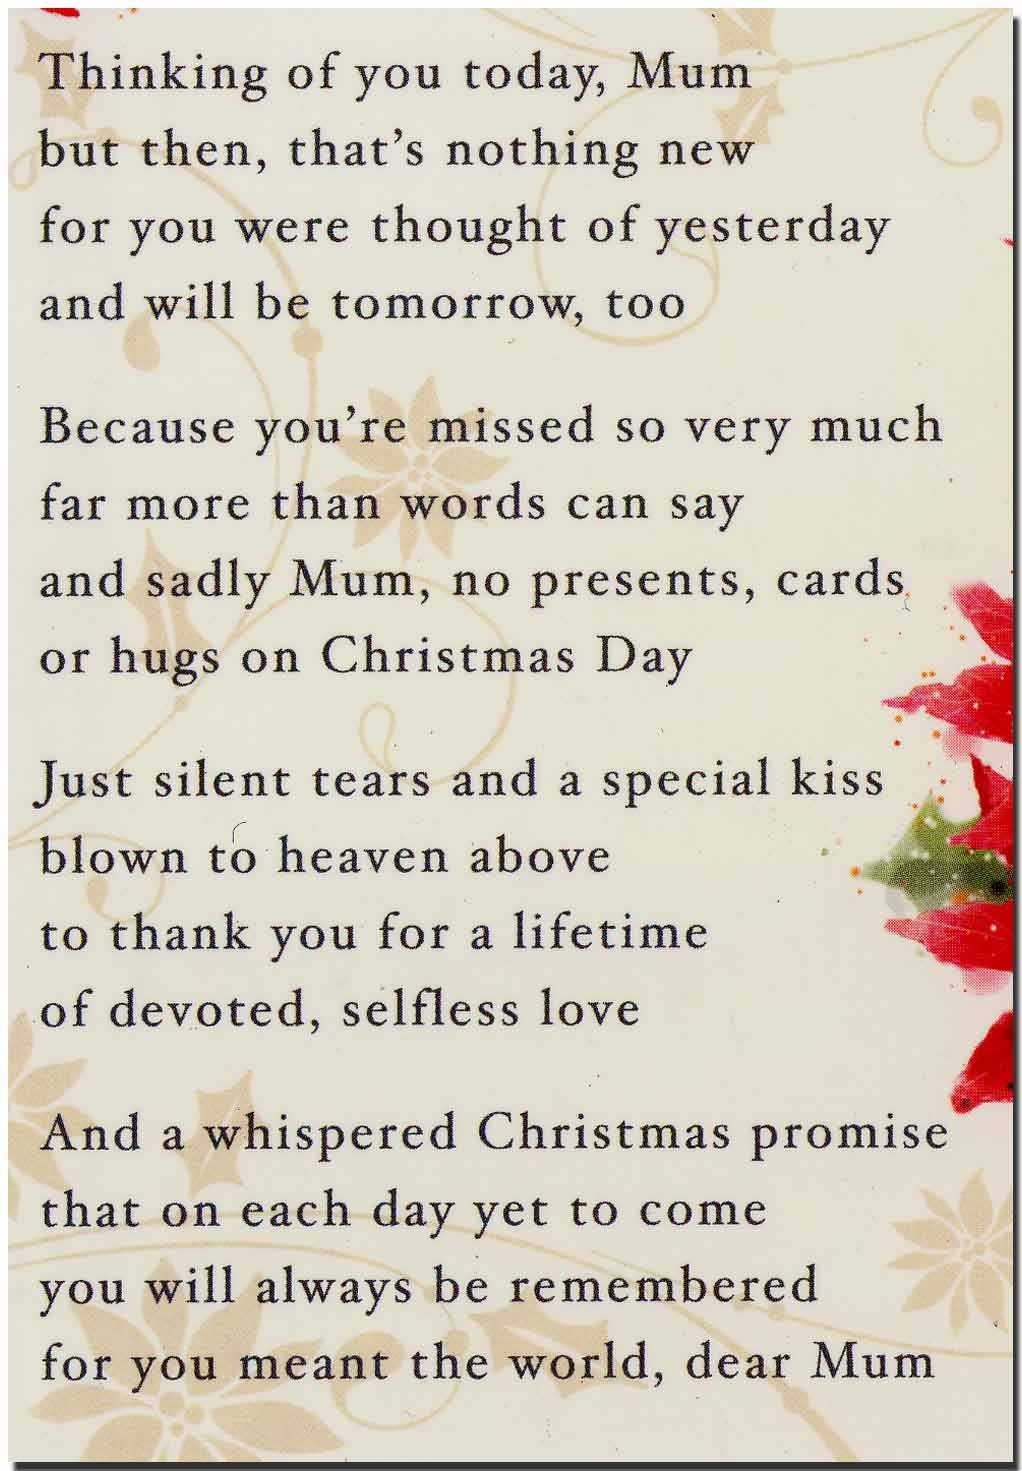 grave card in memory of a special mum with love at christmas